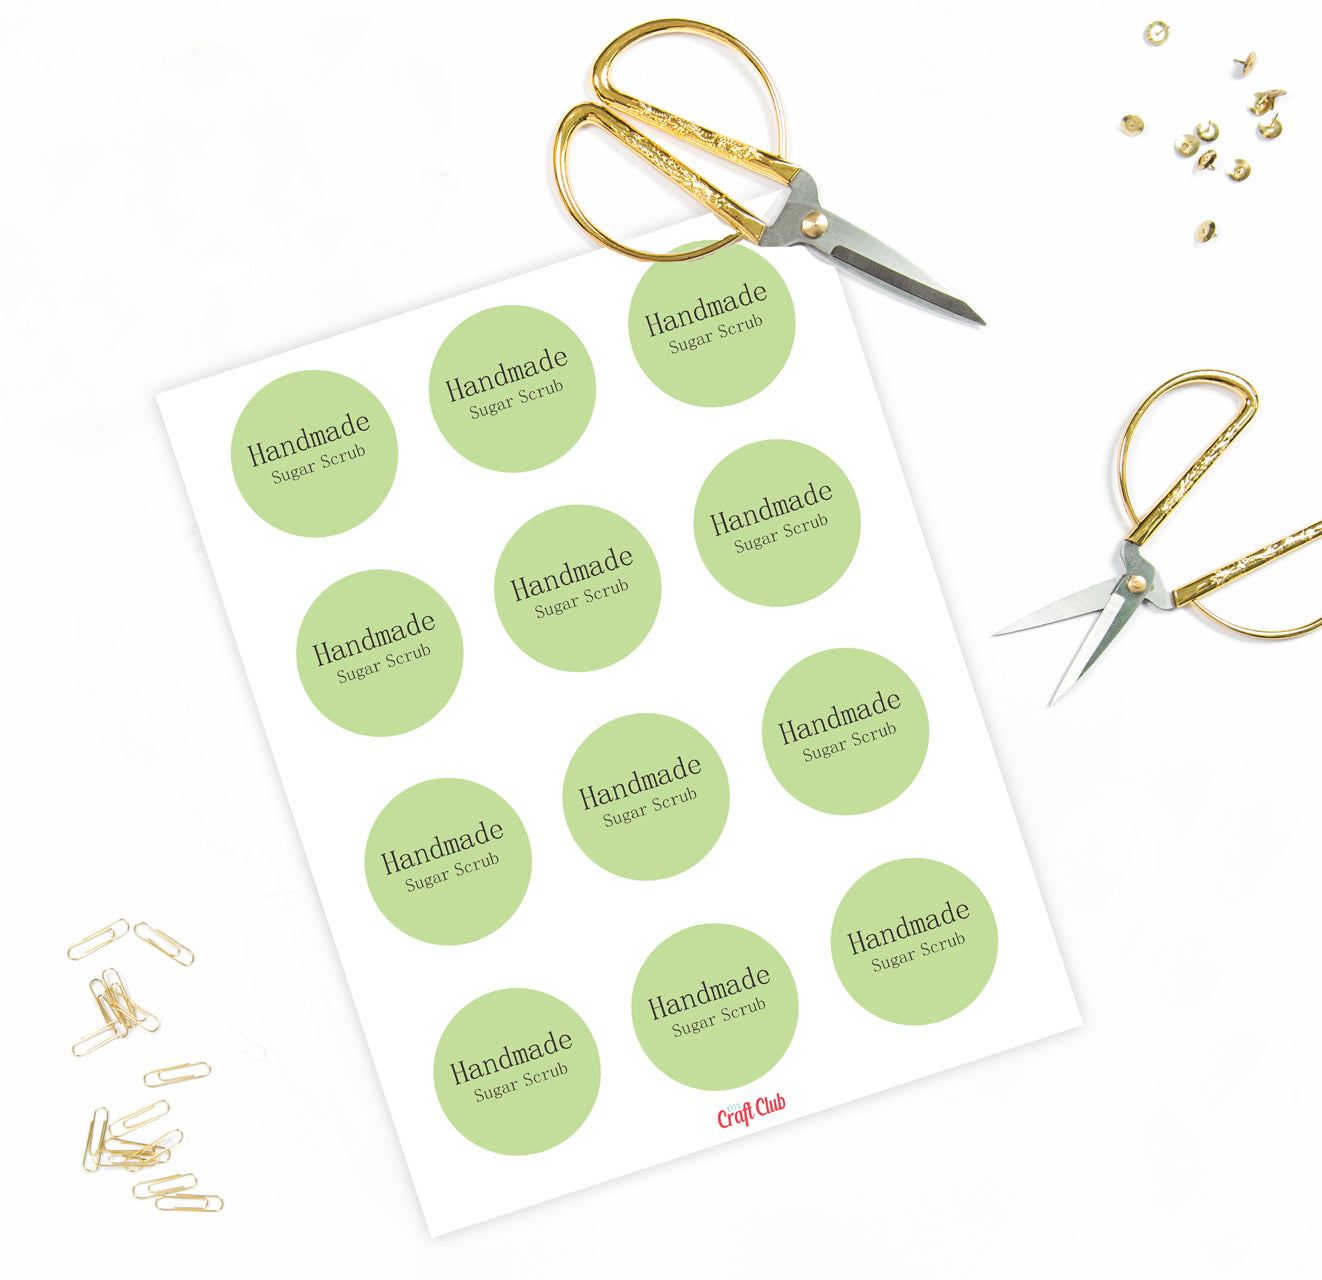 image about Mason Jar Printable Labels called Sugar Scrub Printable Labels For Mason Jar Lid - Do it yourself Craft Club